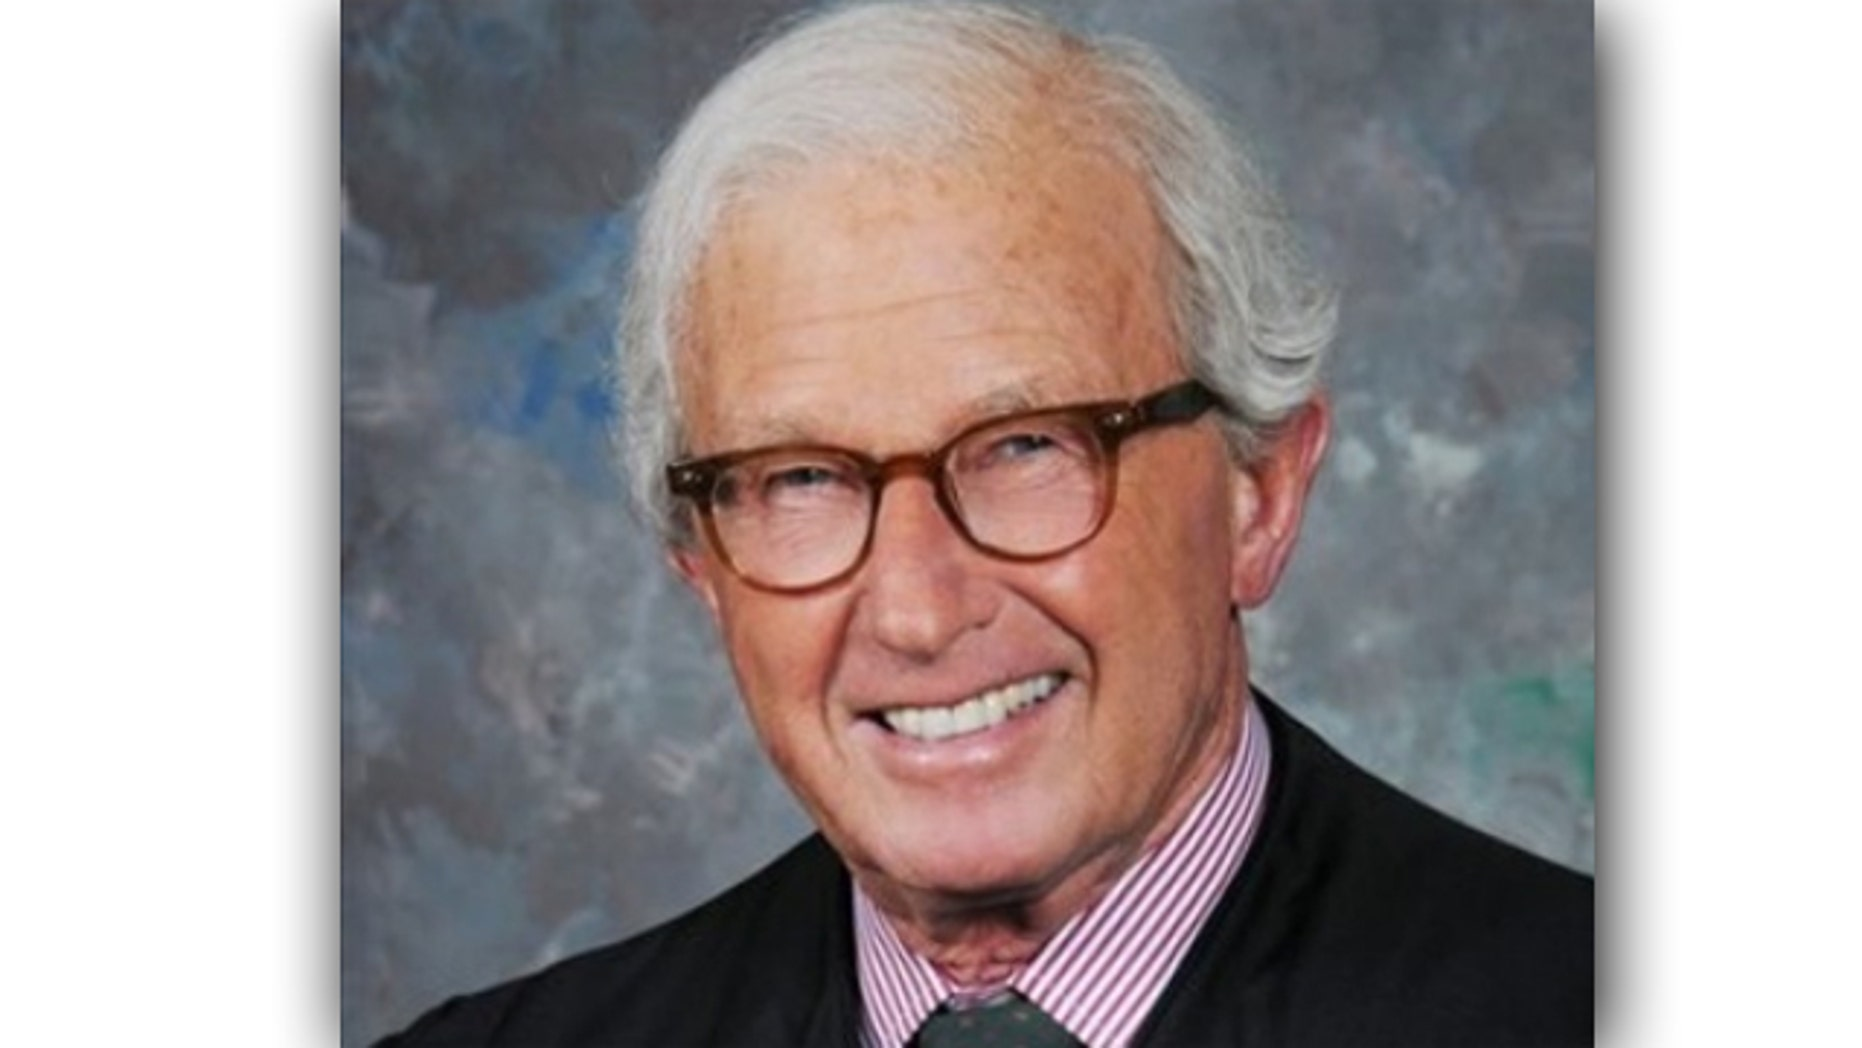 U.S. District Judge Martin Feldman struck down the Obama administration's six-month ban on deepwater oil drilling in the Gulf of Mexico.